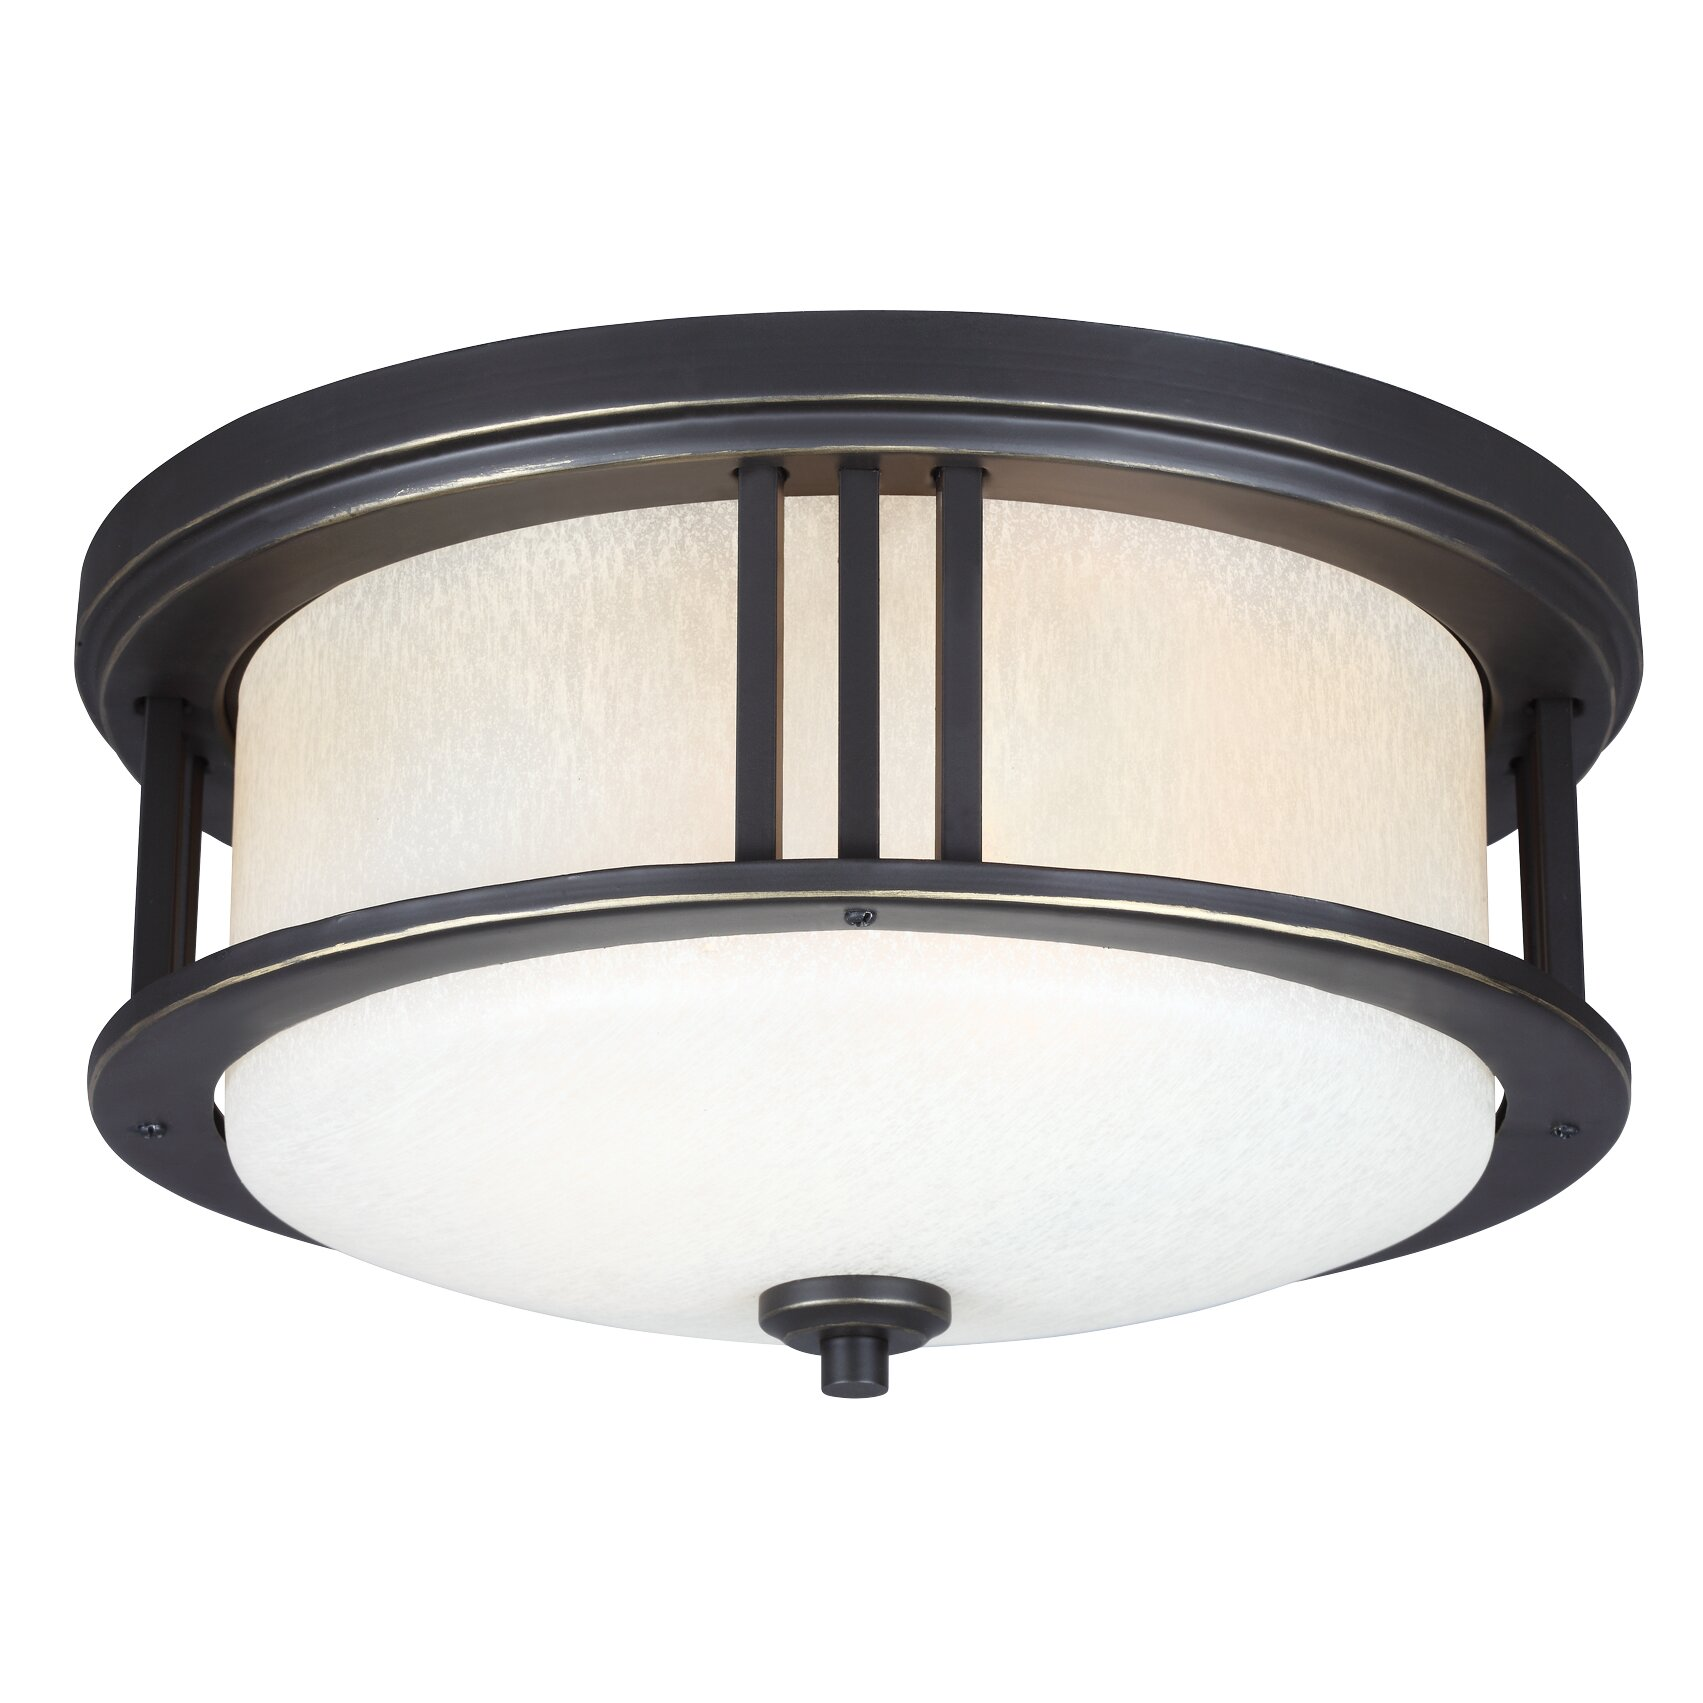 Crowell 2 Light Outdoor Ceiling Flush Mount